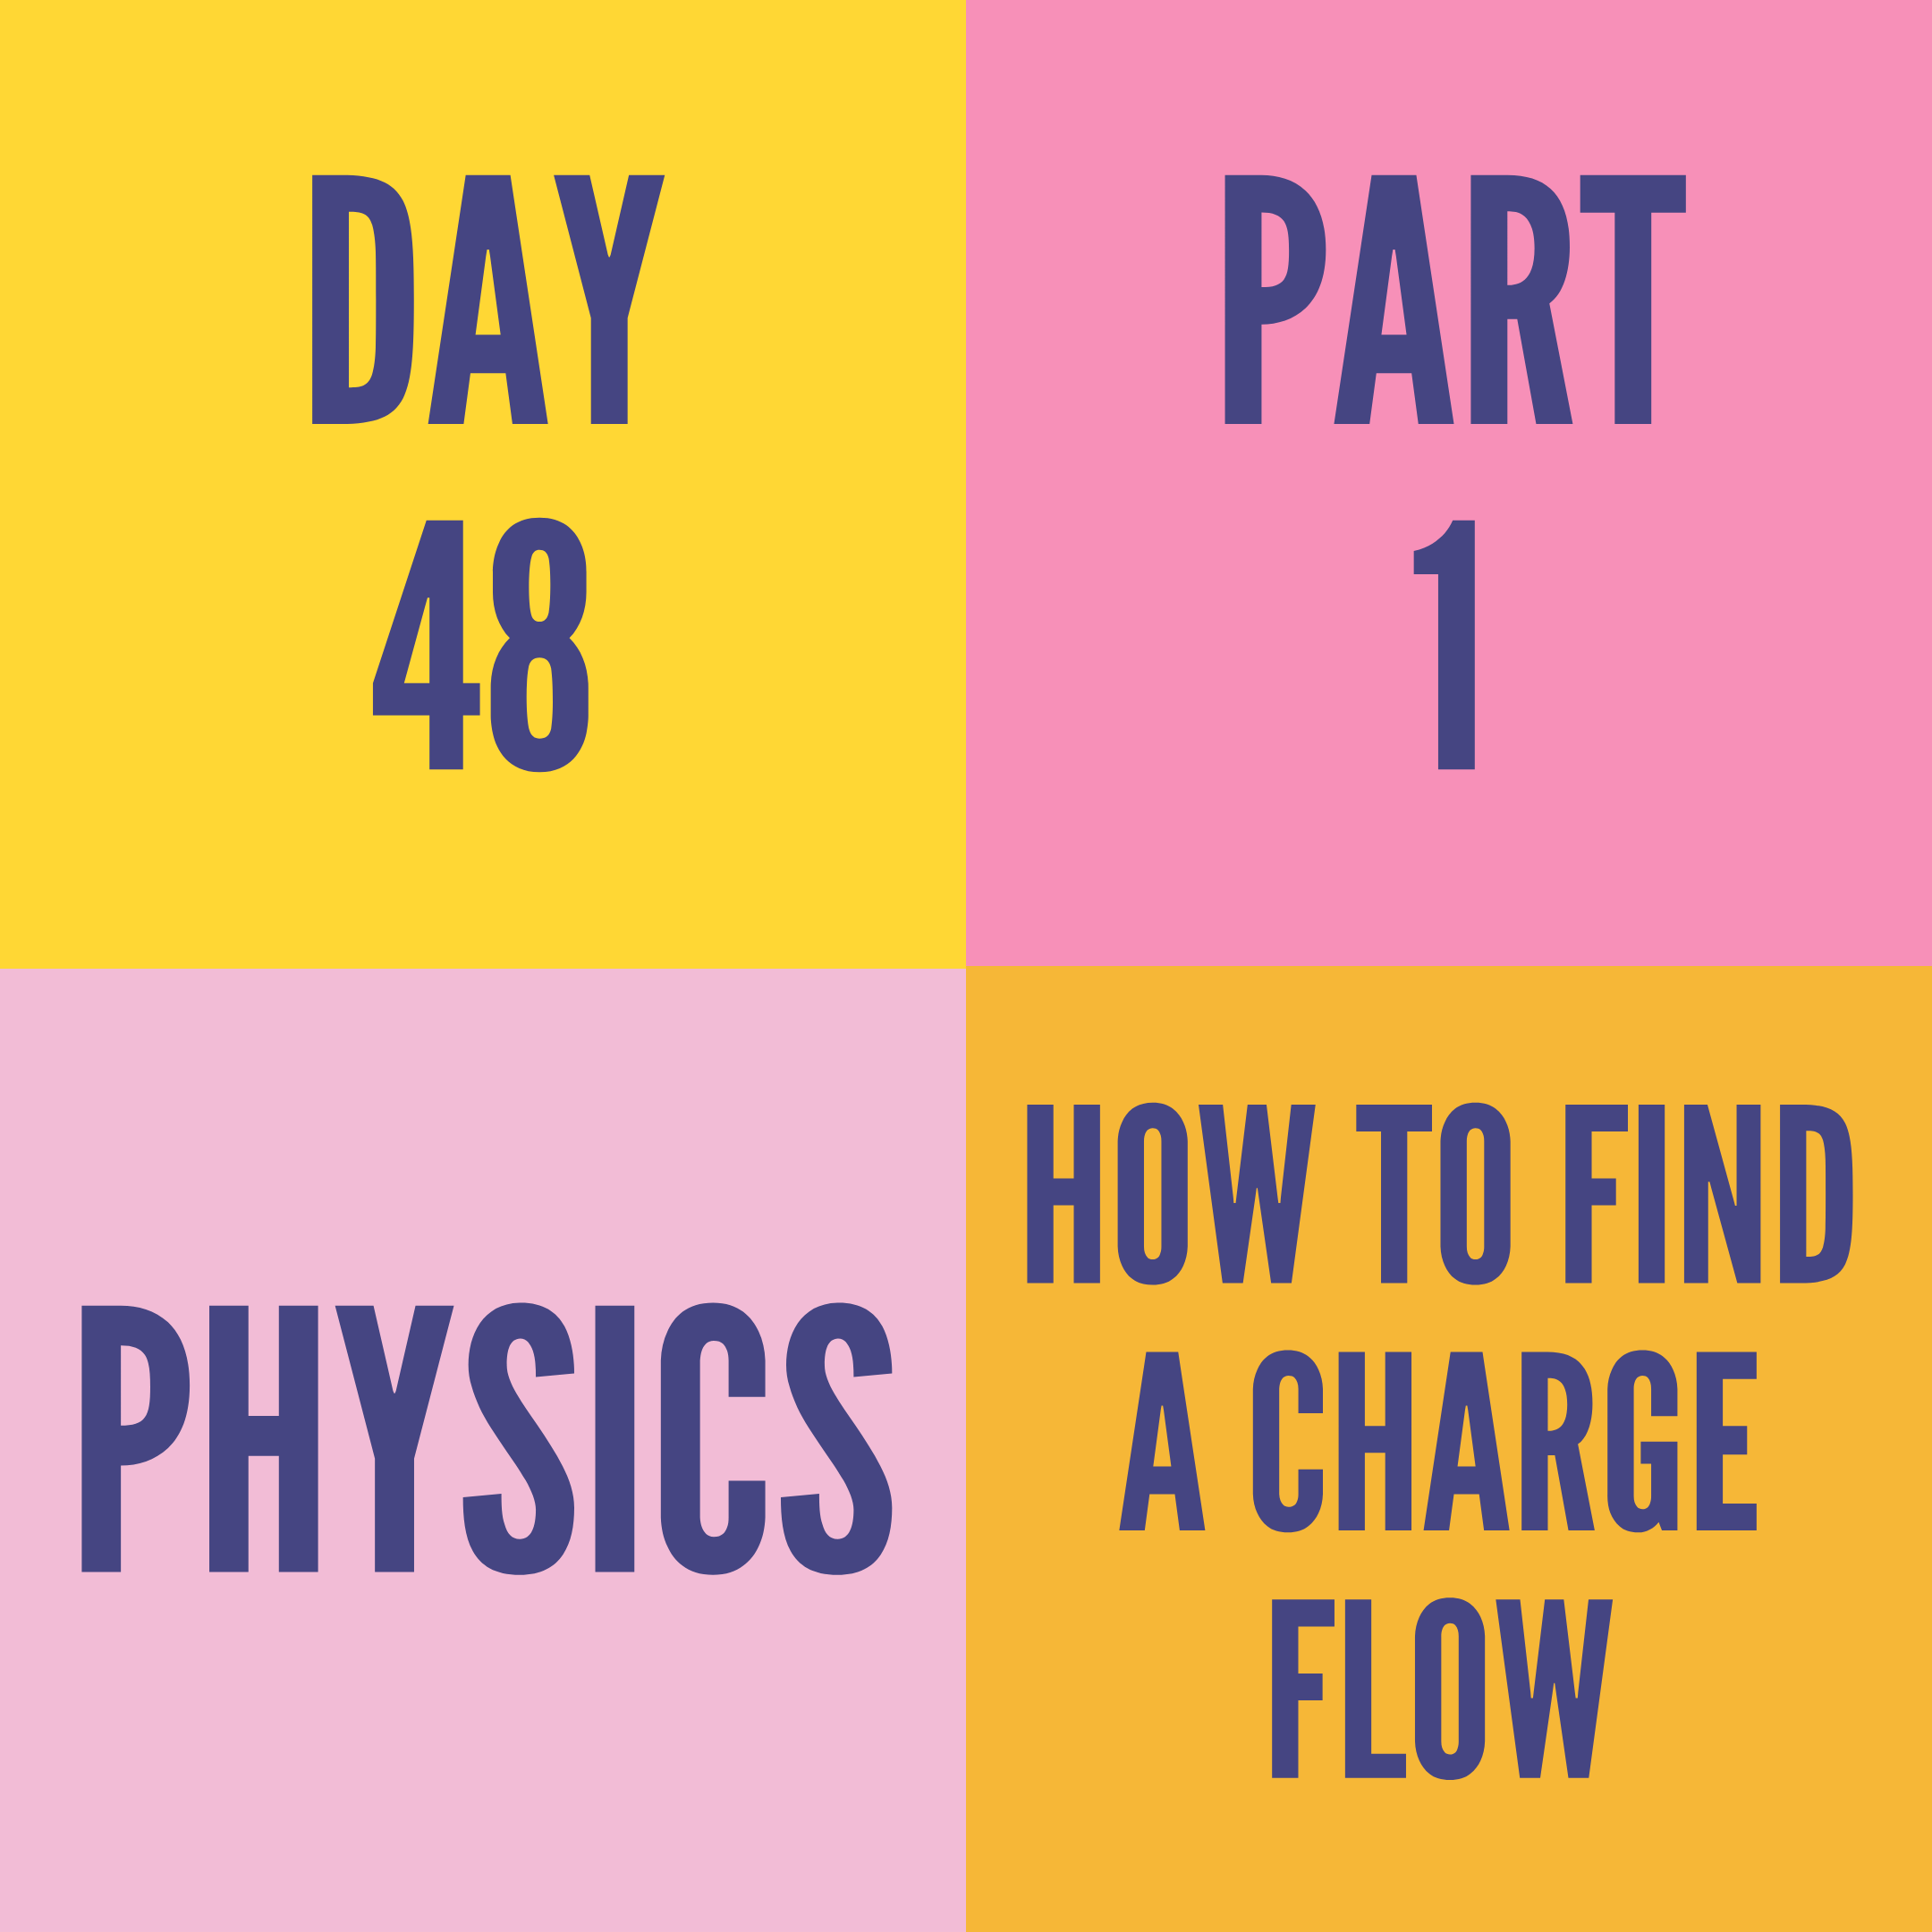 DAY-48 PART-1  HOW TO FIND A CHARGE FLOW